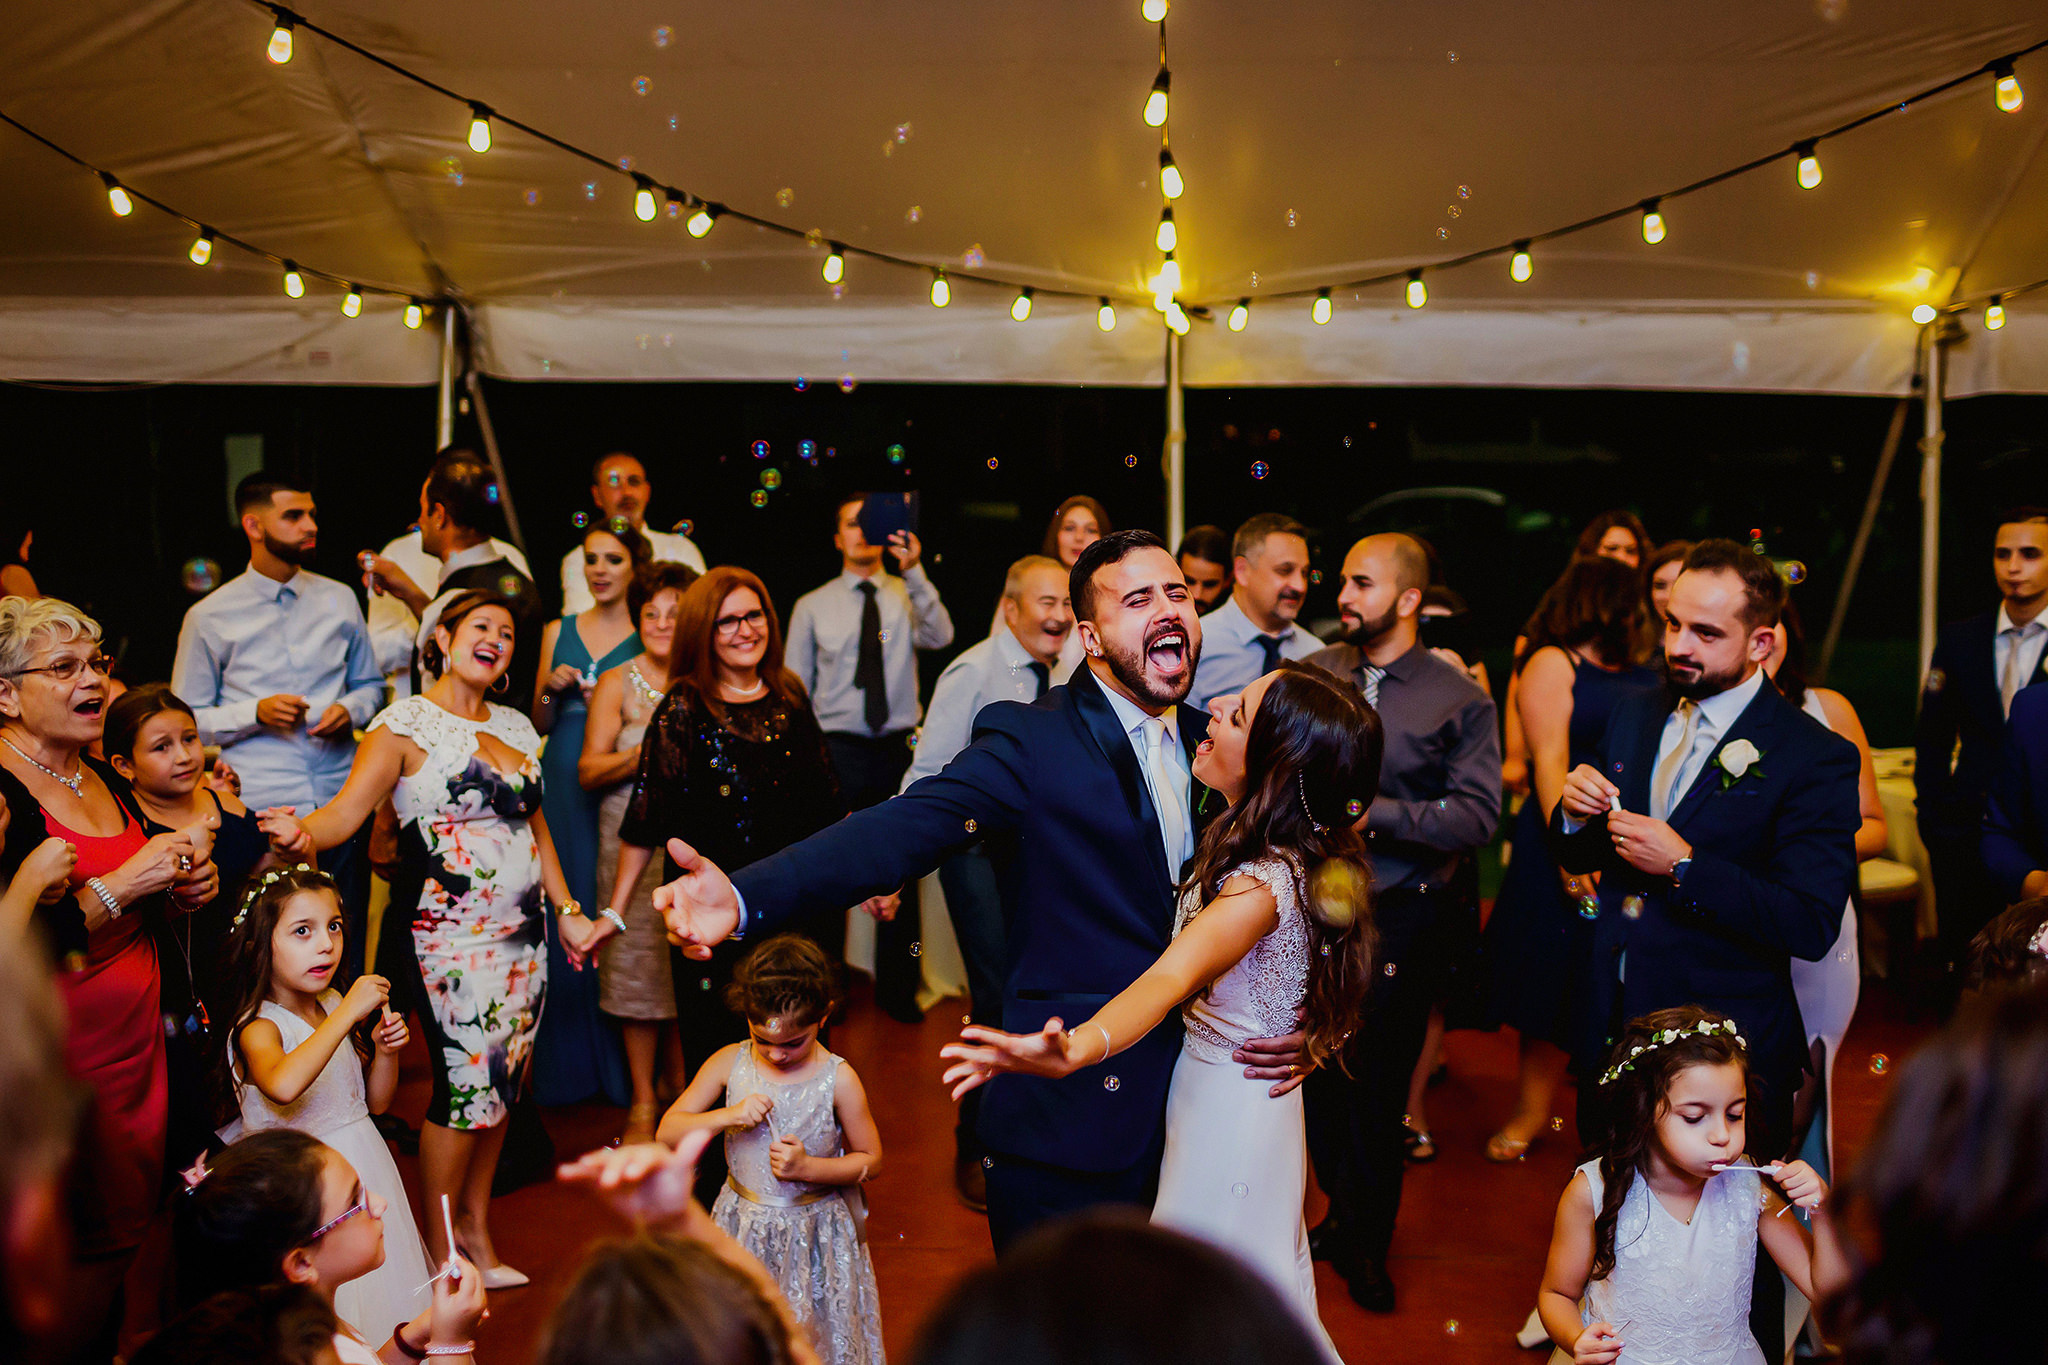 bride & groom celebrate with guests at Montreal wedding